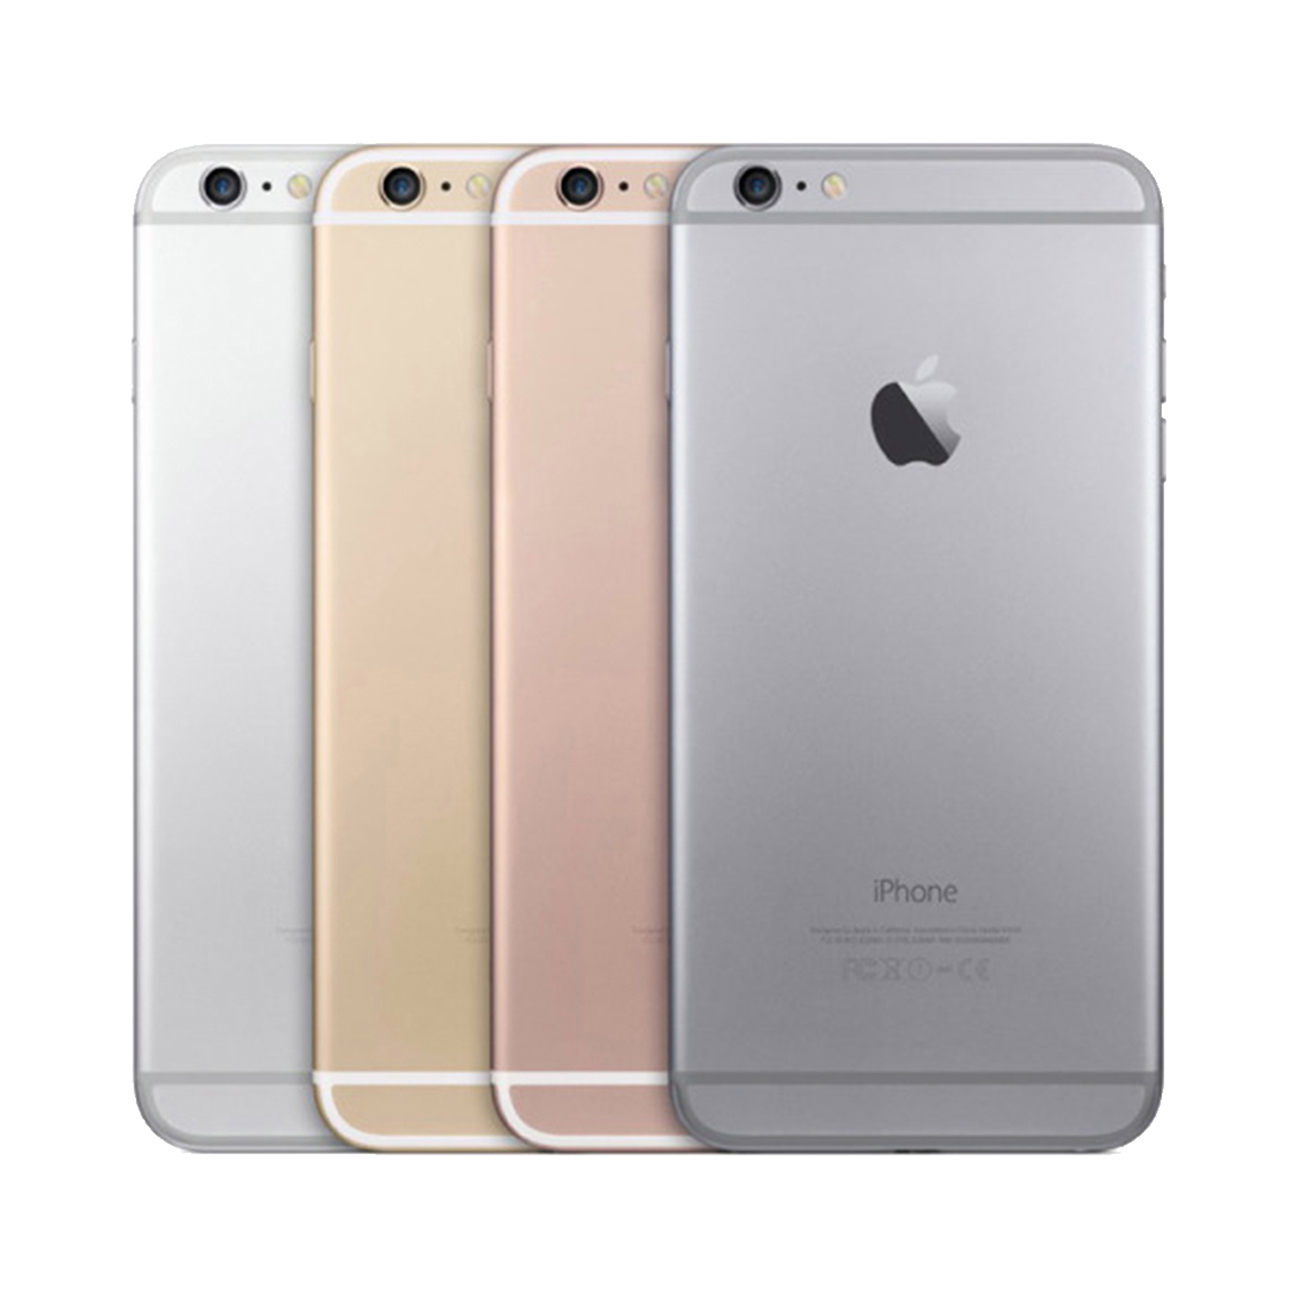 apple iphone 6s space grey gold silver rose gold 16 64 128 gb smartphone as new 888462561556 ebay. Black Bedroom Furniture Sets. Home Design Ideas